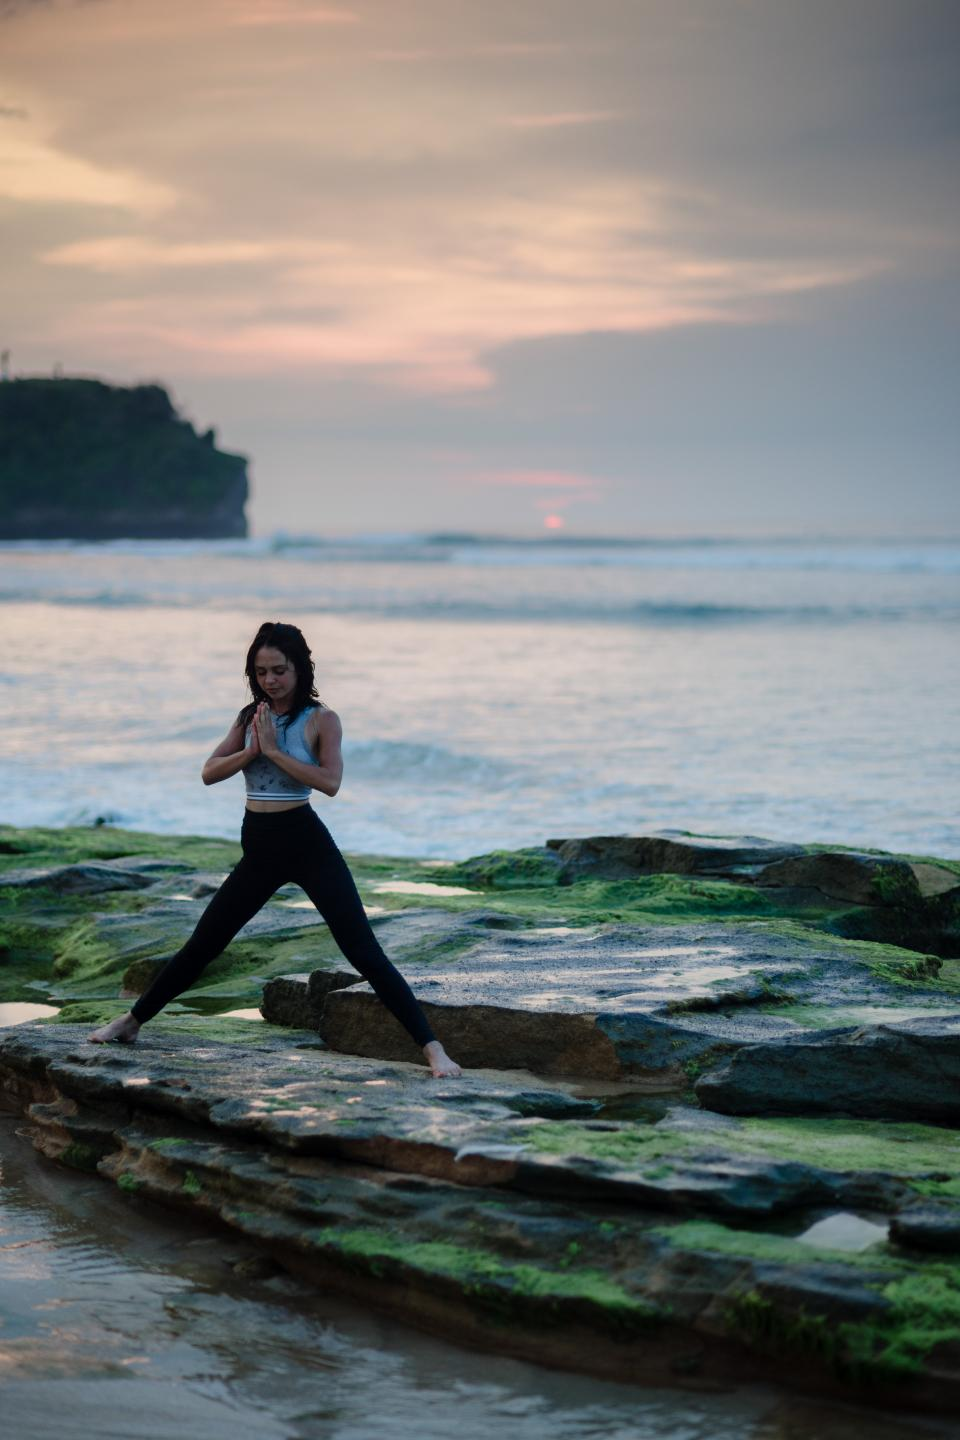 sea, ocean, water, waves, nature, coast, rock, people, girl, woman, health, yoga, meditation, fitness, outdoor, cloud, sky